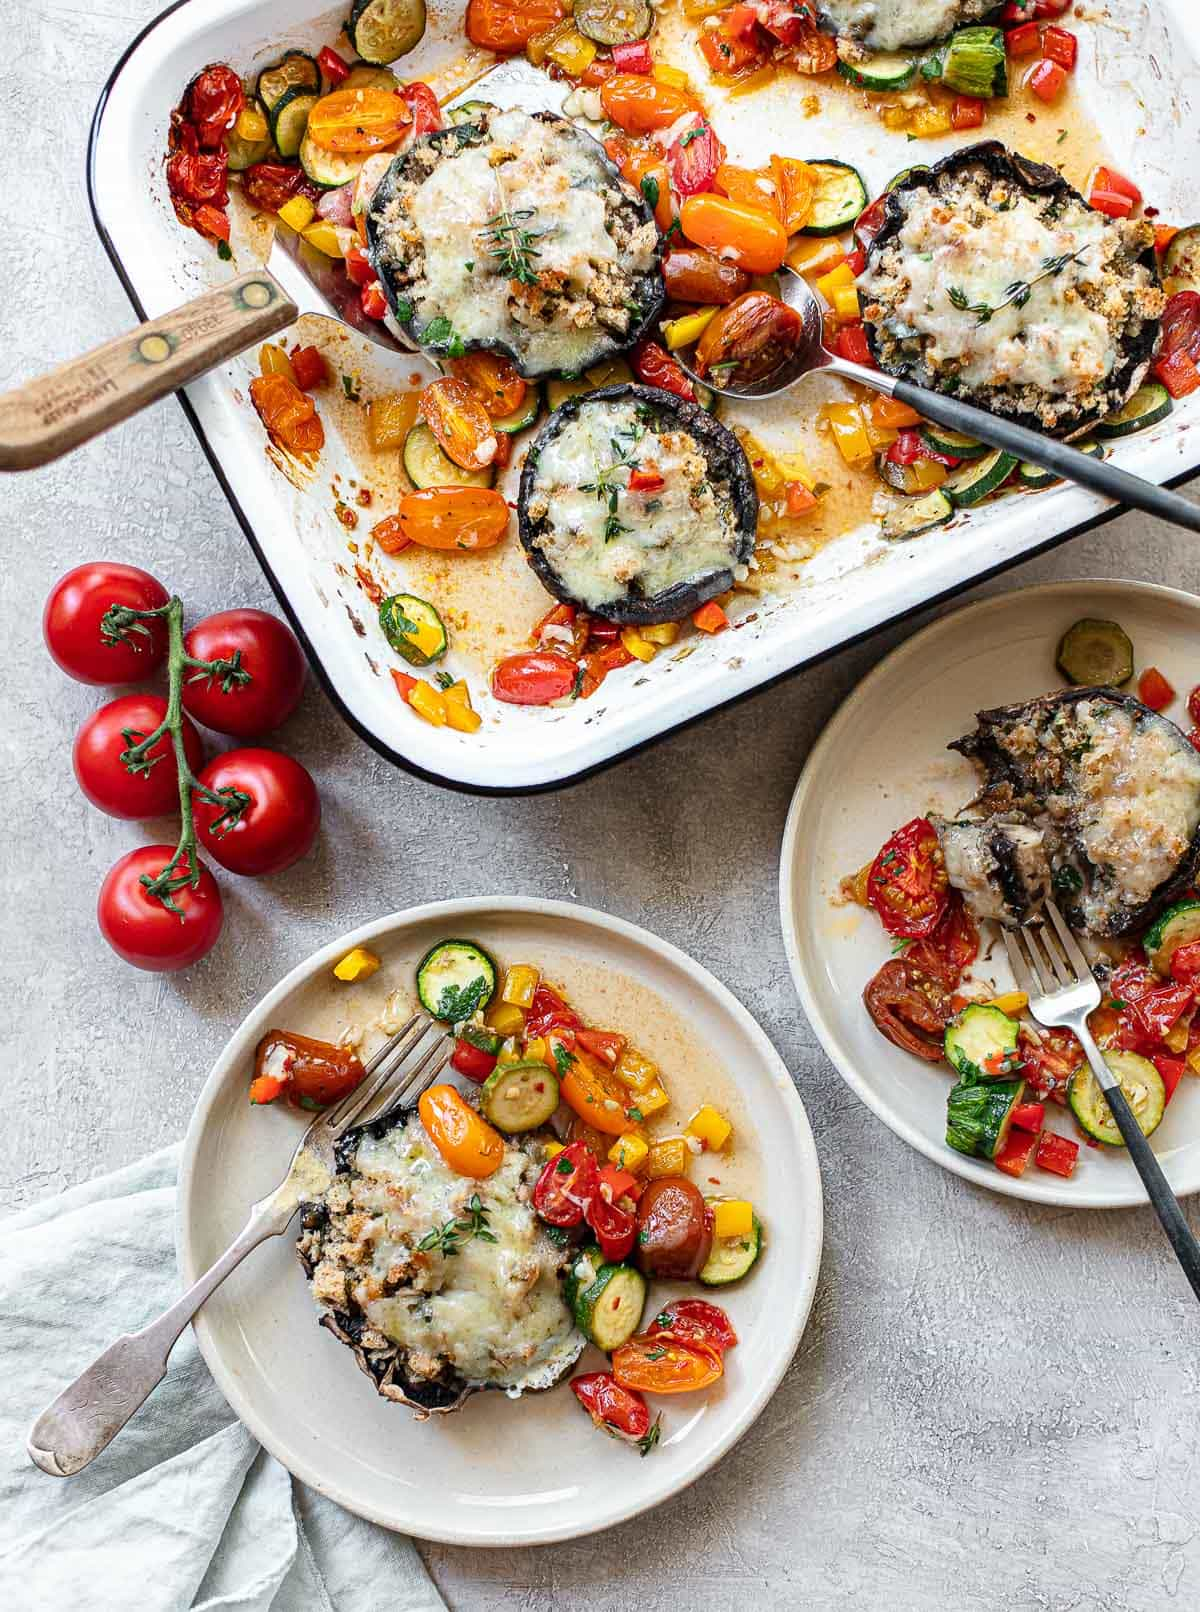 Cheesy Stuffed Portobello Mushrooms with Roasted Mediterranean Vegetables